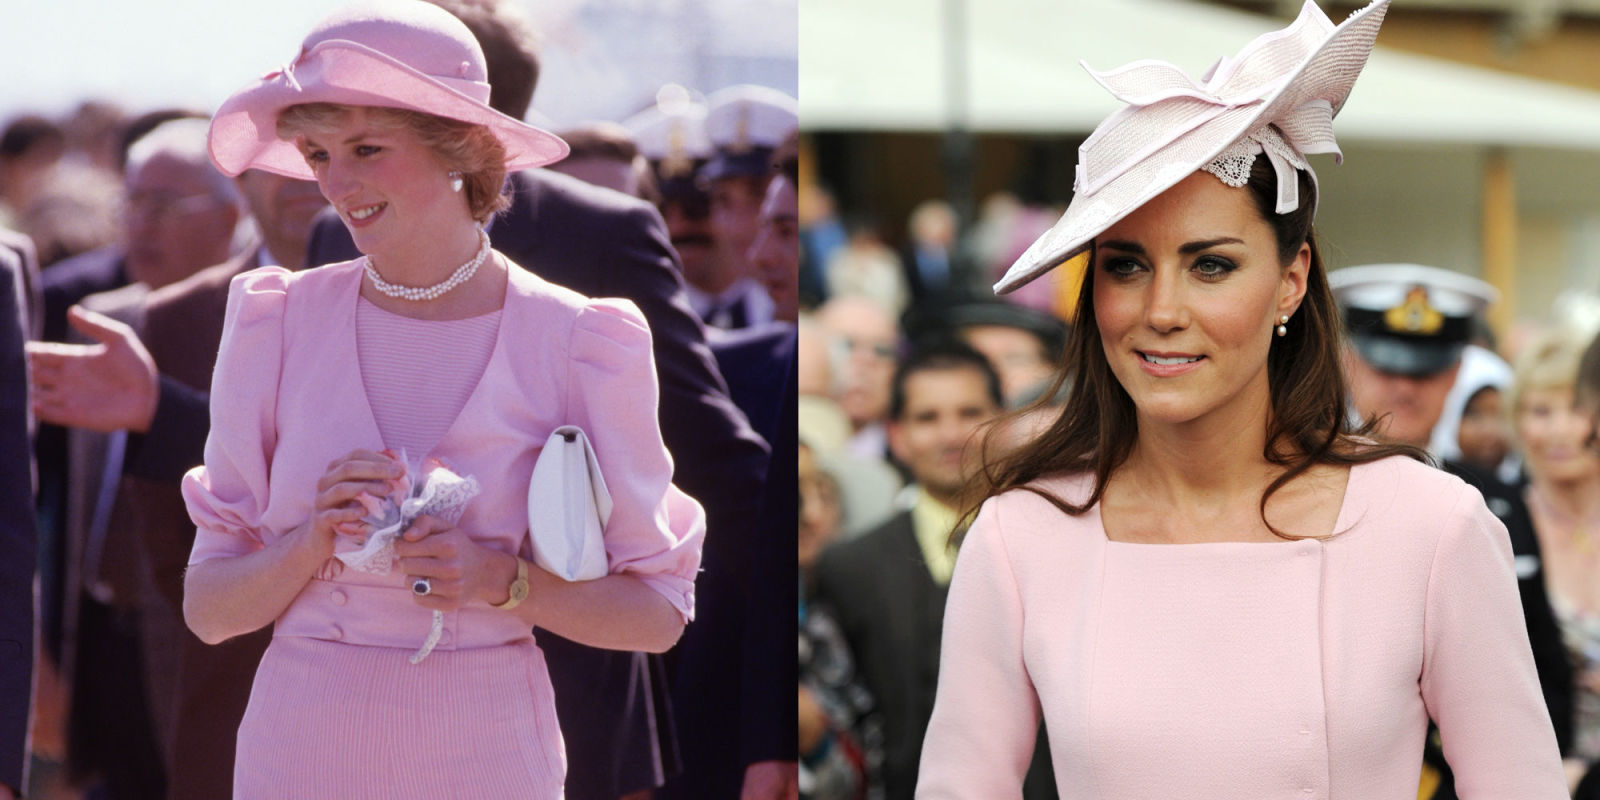 Princess Diana And Kate Middleton Have The Same Style